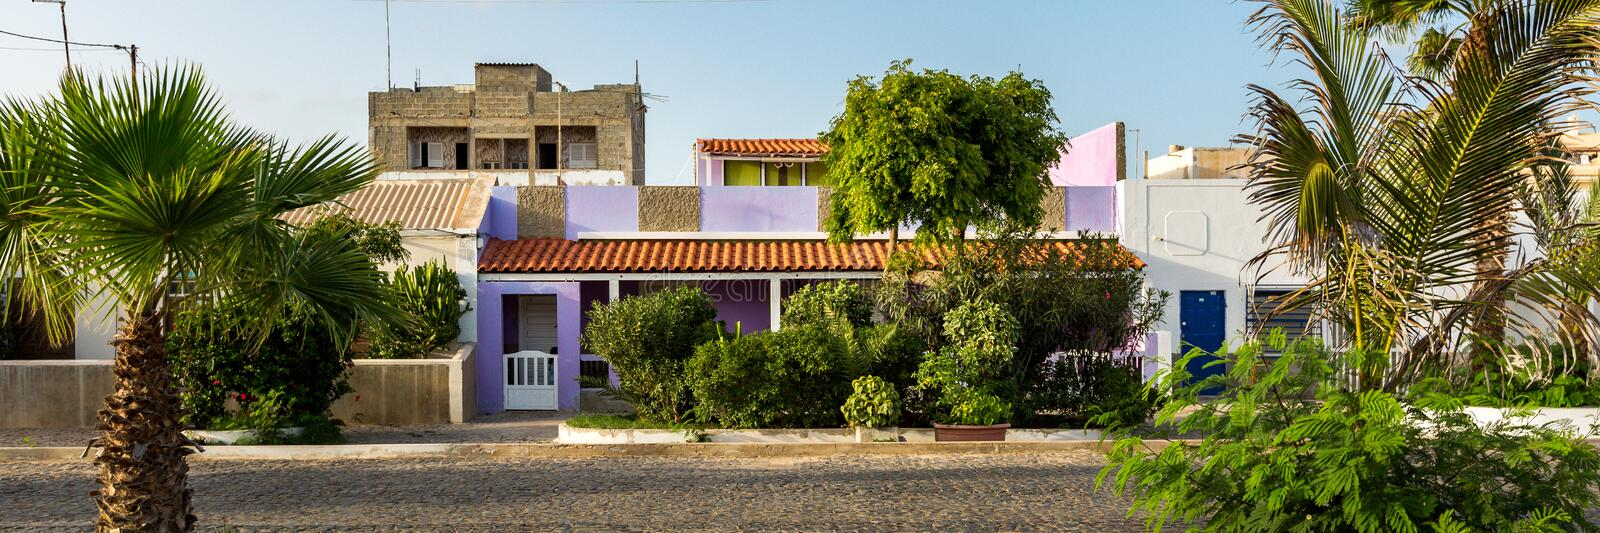 Colorful buildings and palm trees. Panorama of colorful buildings and palm trees in city of Santa Maria, Sal island, Cabo Verde, Cape Verde royalty free stock photo